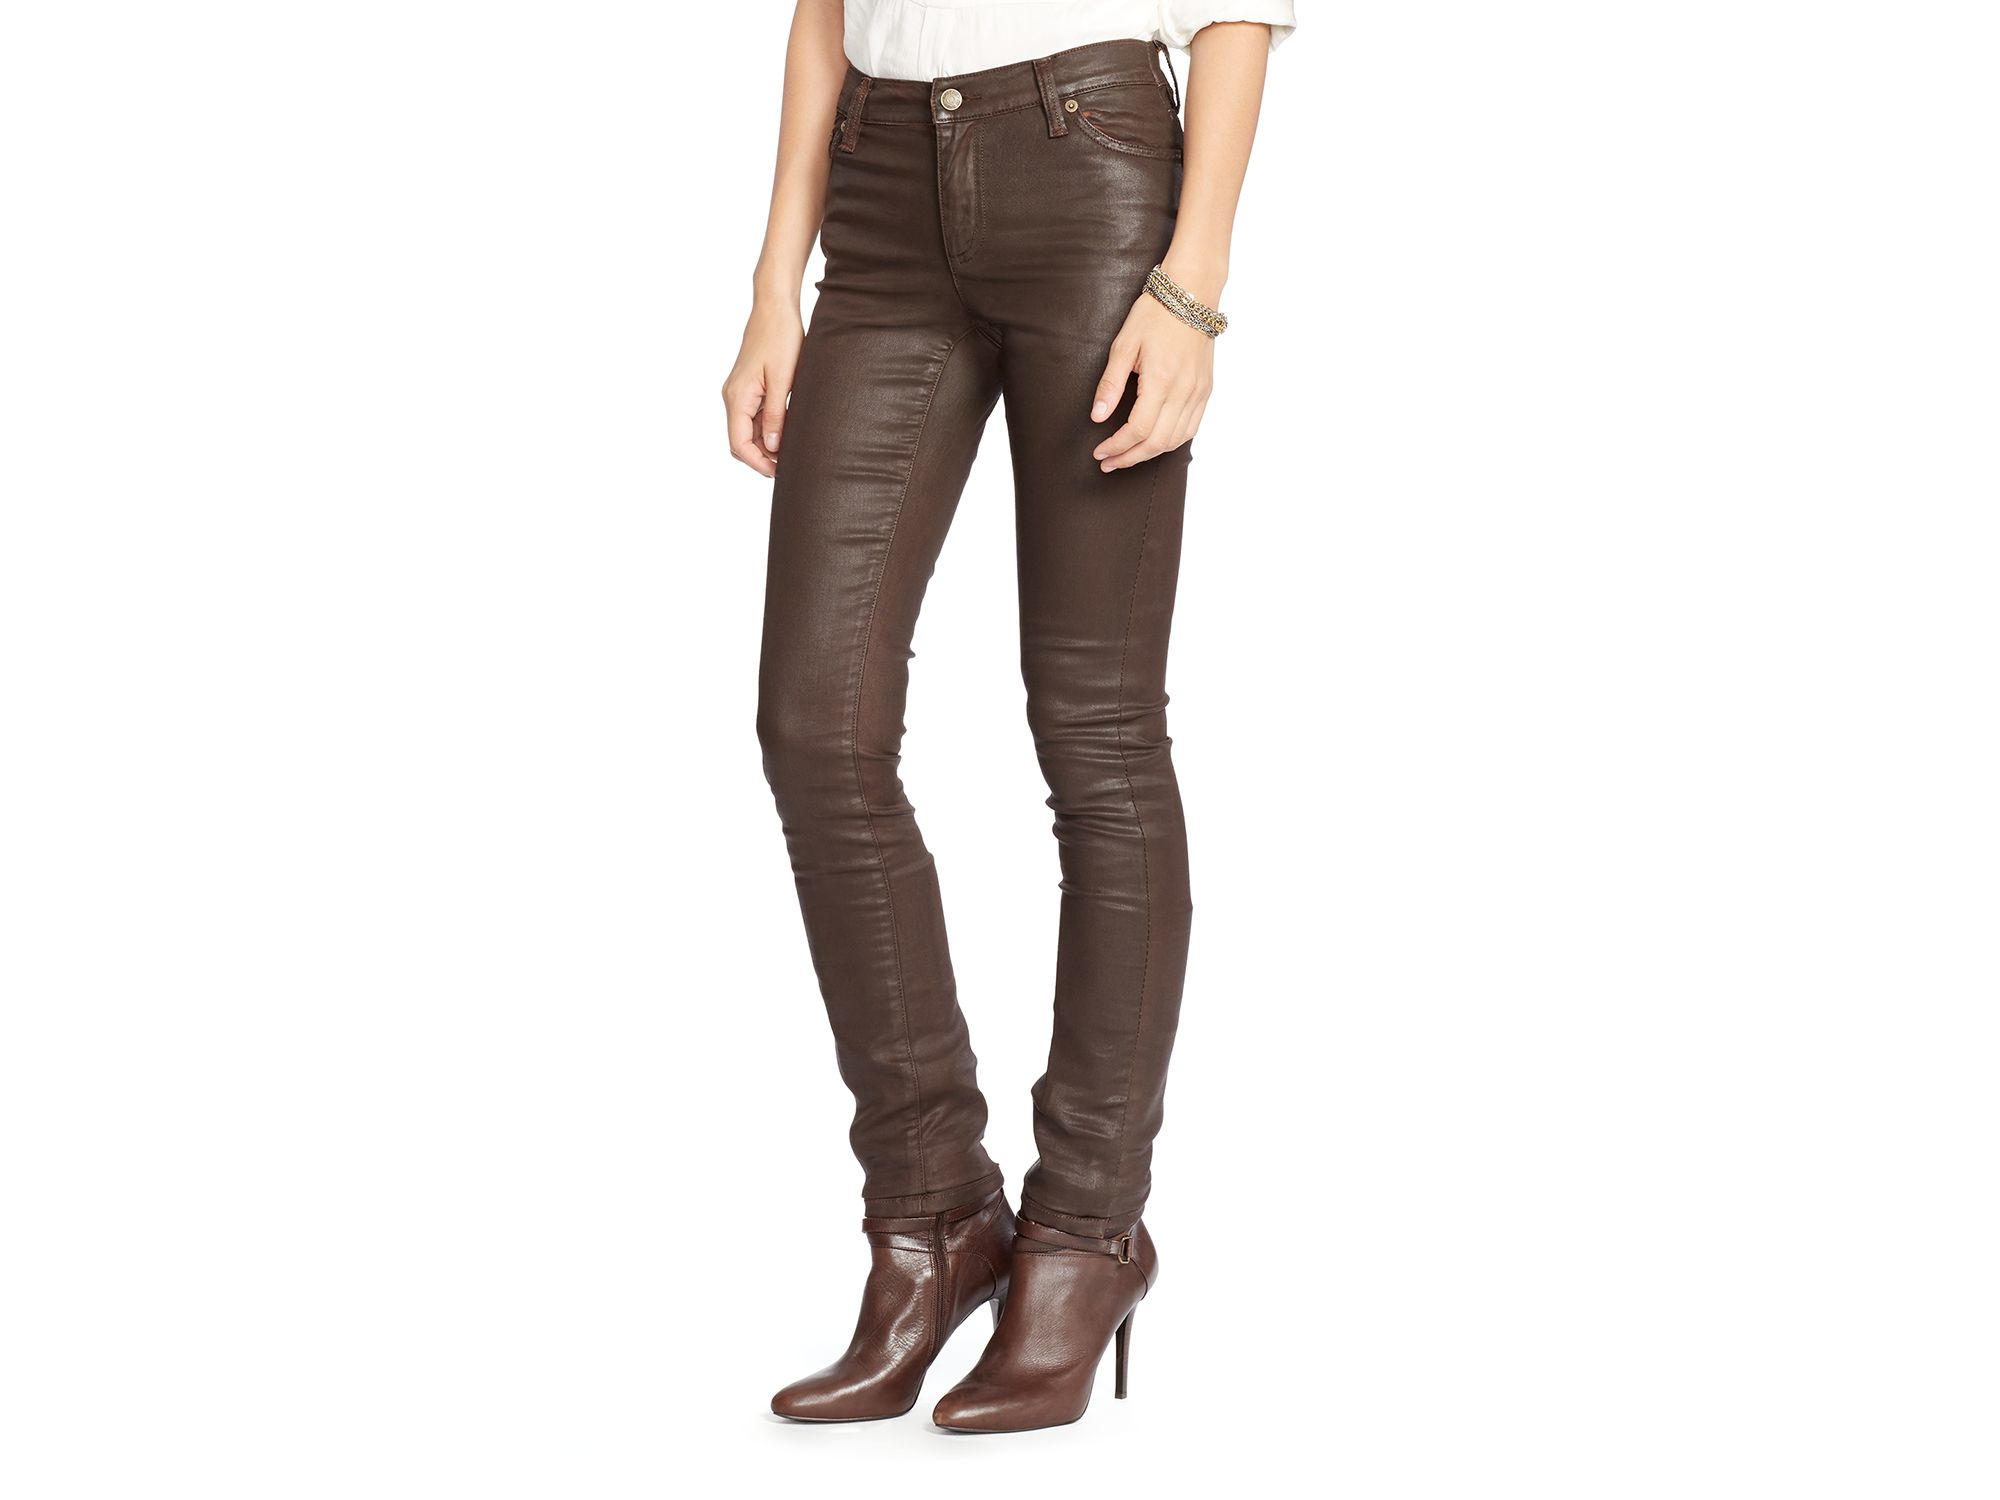 Brown skinny jeans for women